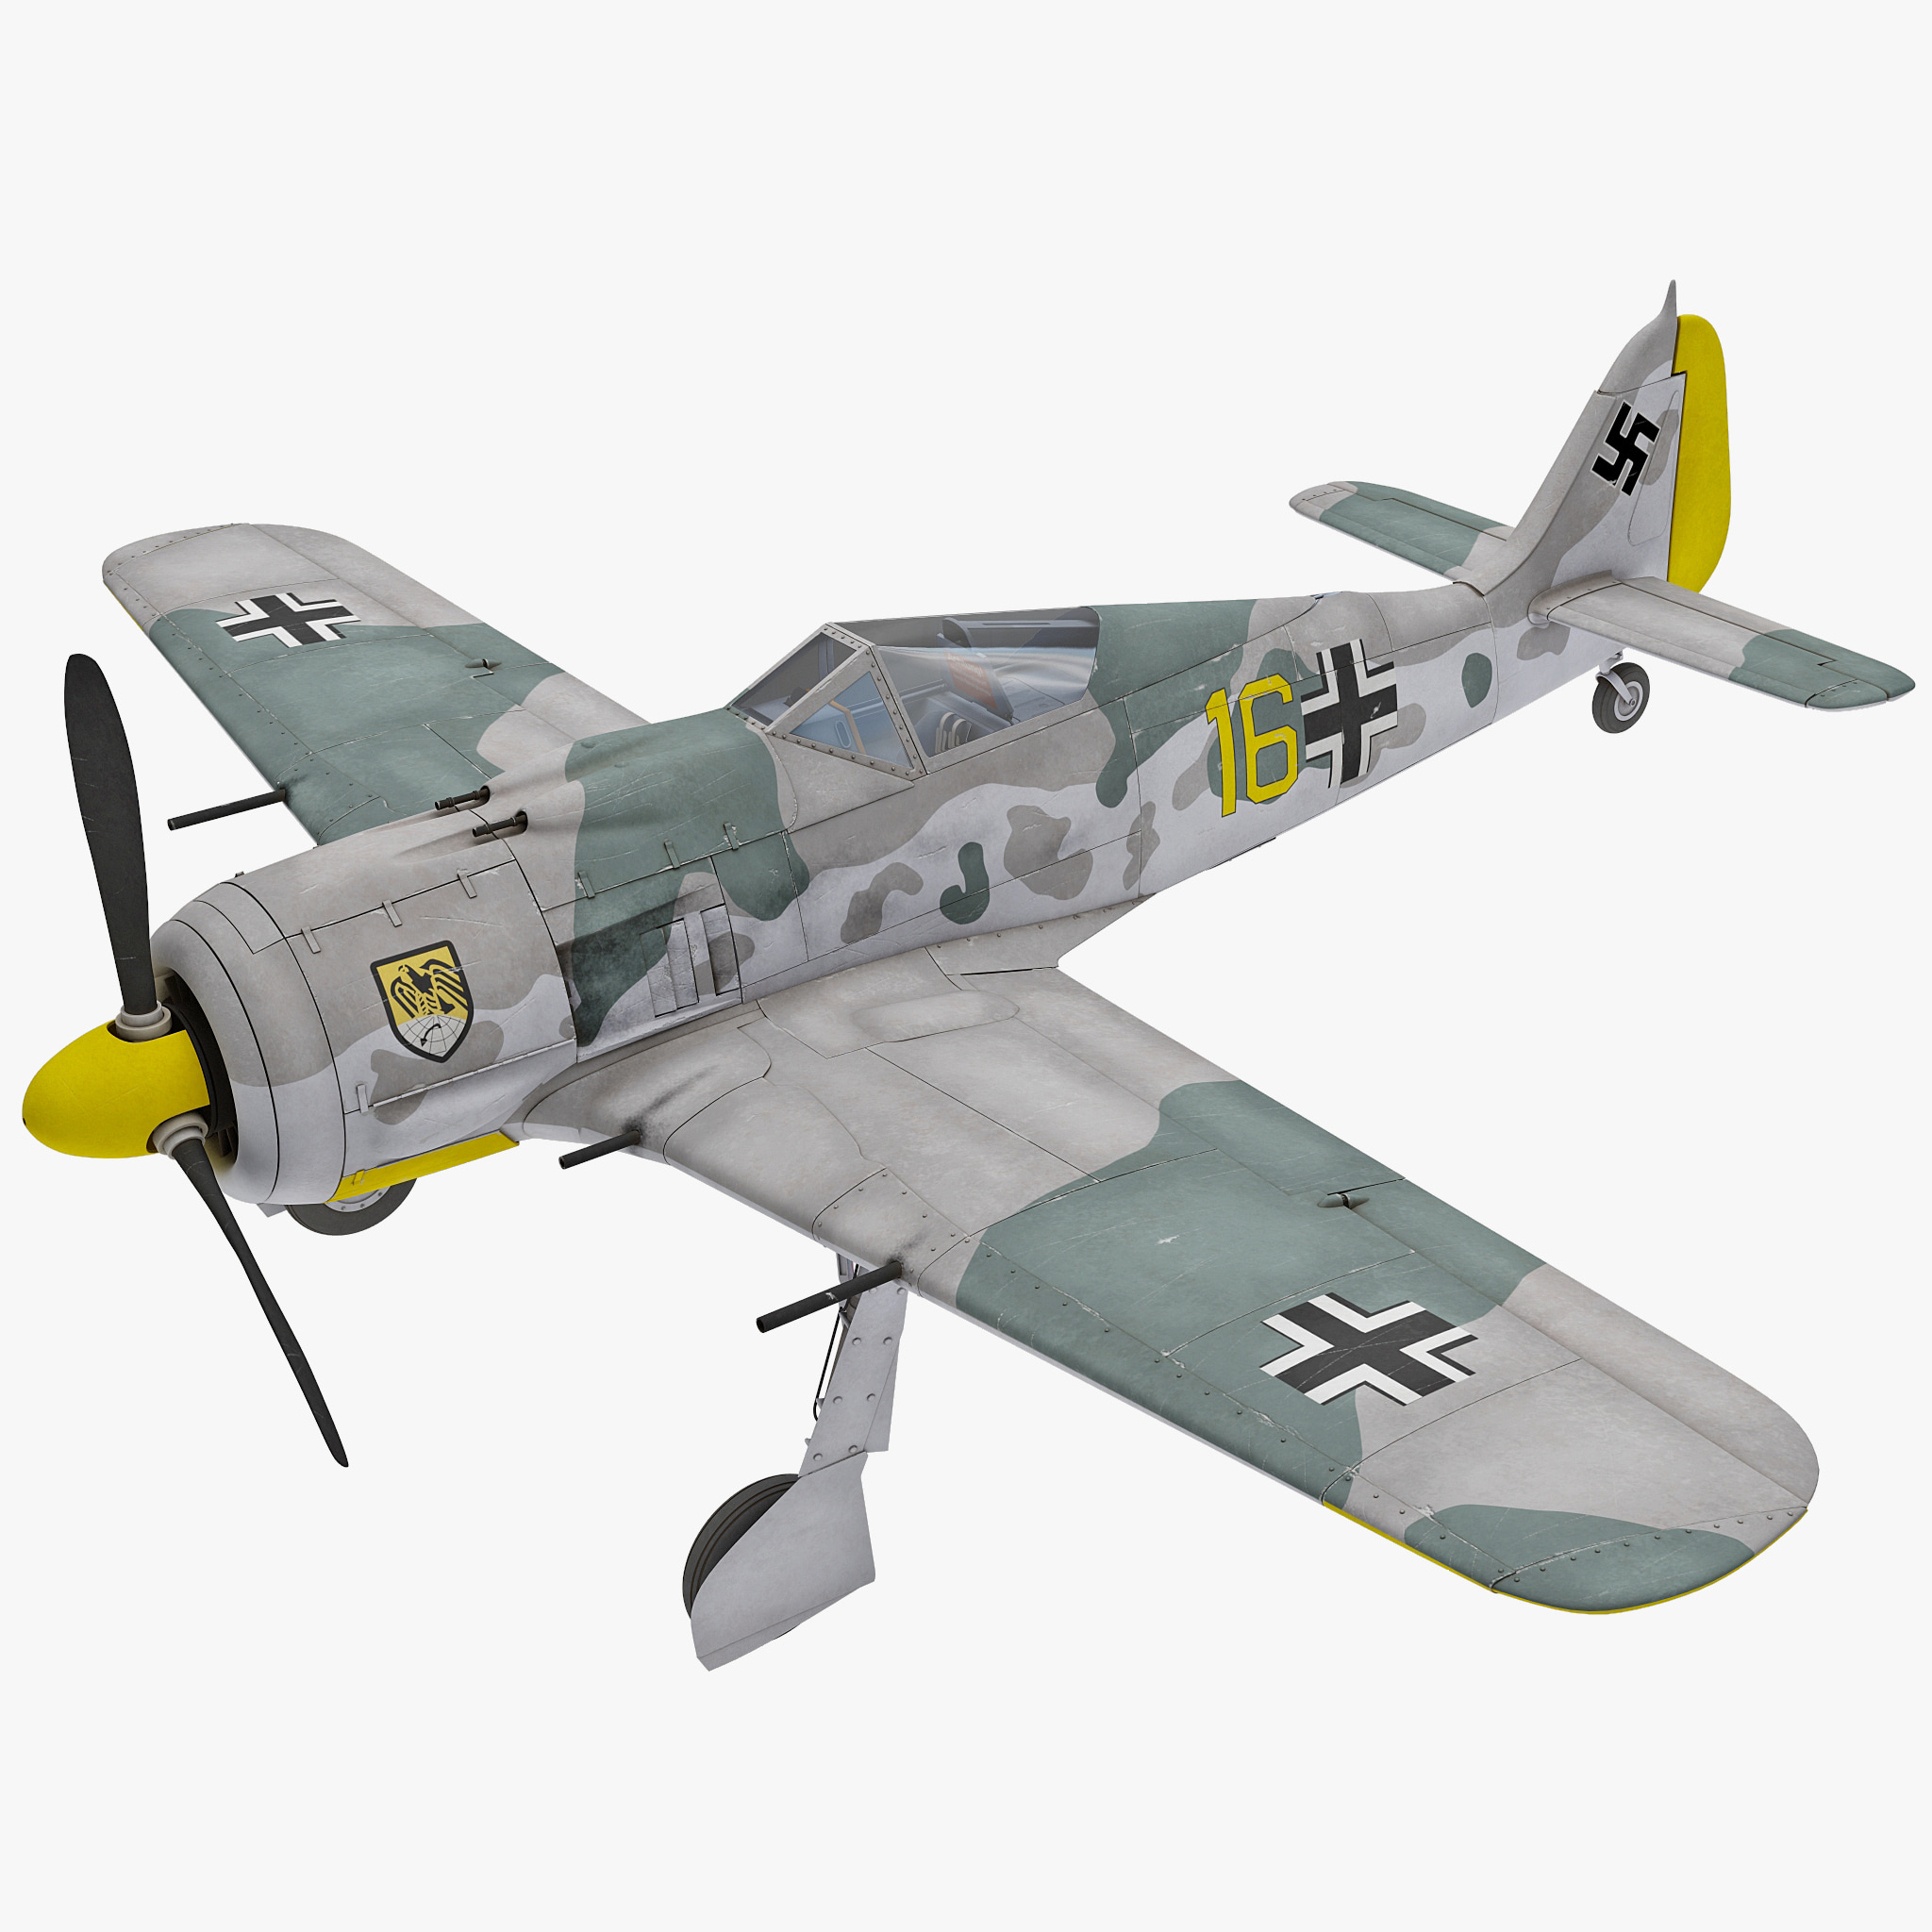 Focke Wulf Fw 190 German WWII Fighter Aircraft 2_1.jpg